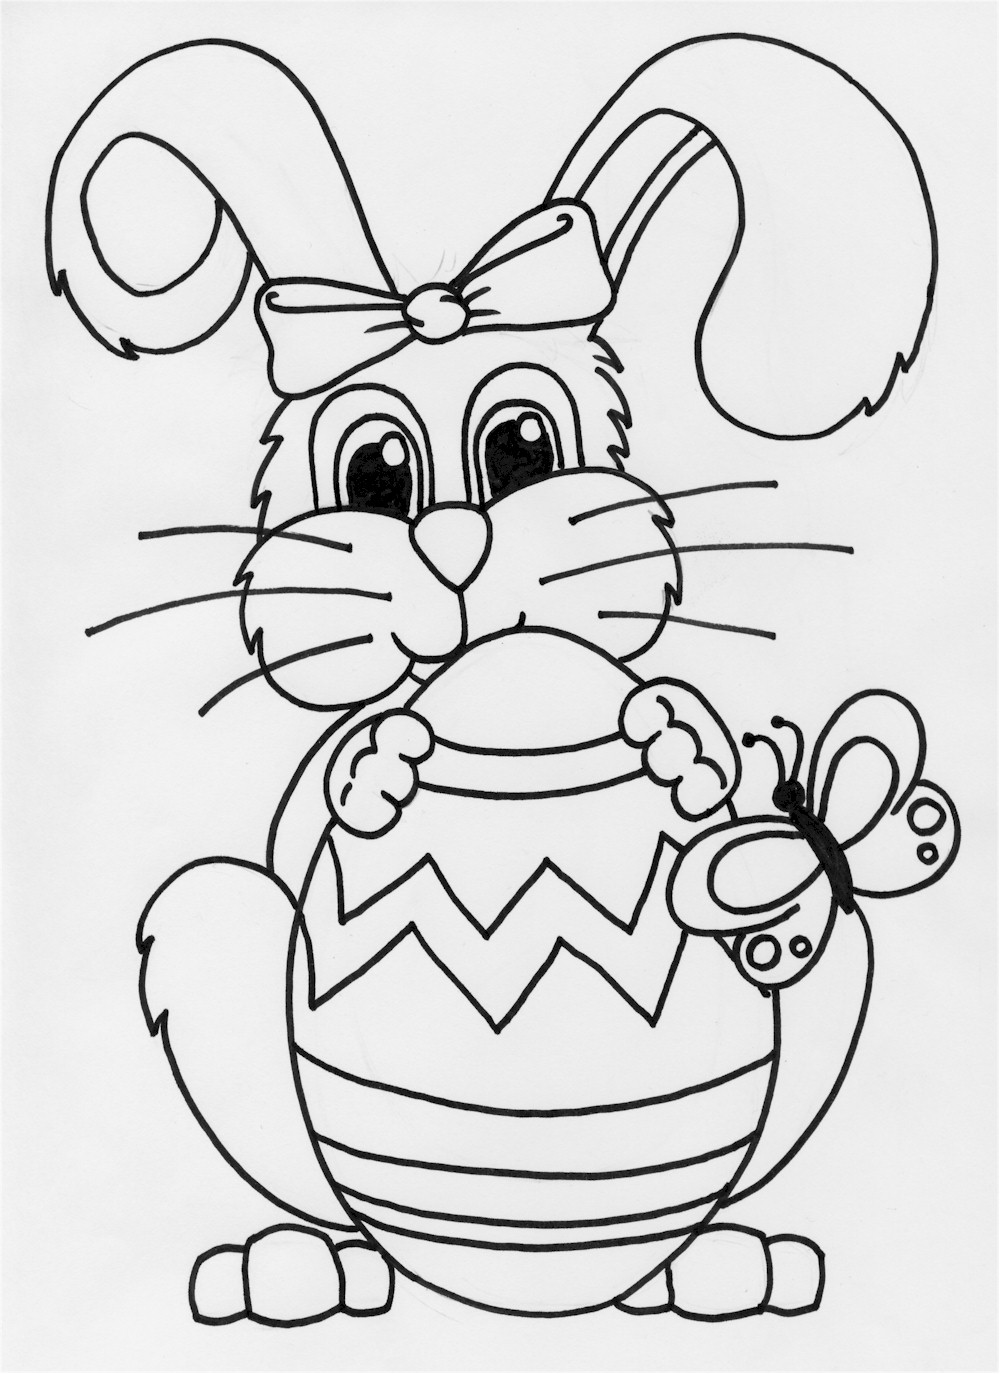 rabbit pictures for kids for colouring hopping bunny is smiling coloring pages kids play color rabbit for kids colouring for pictures